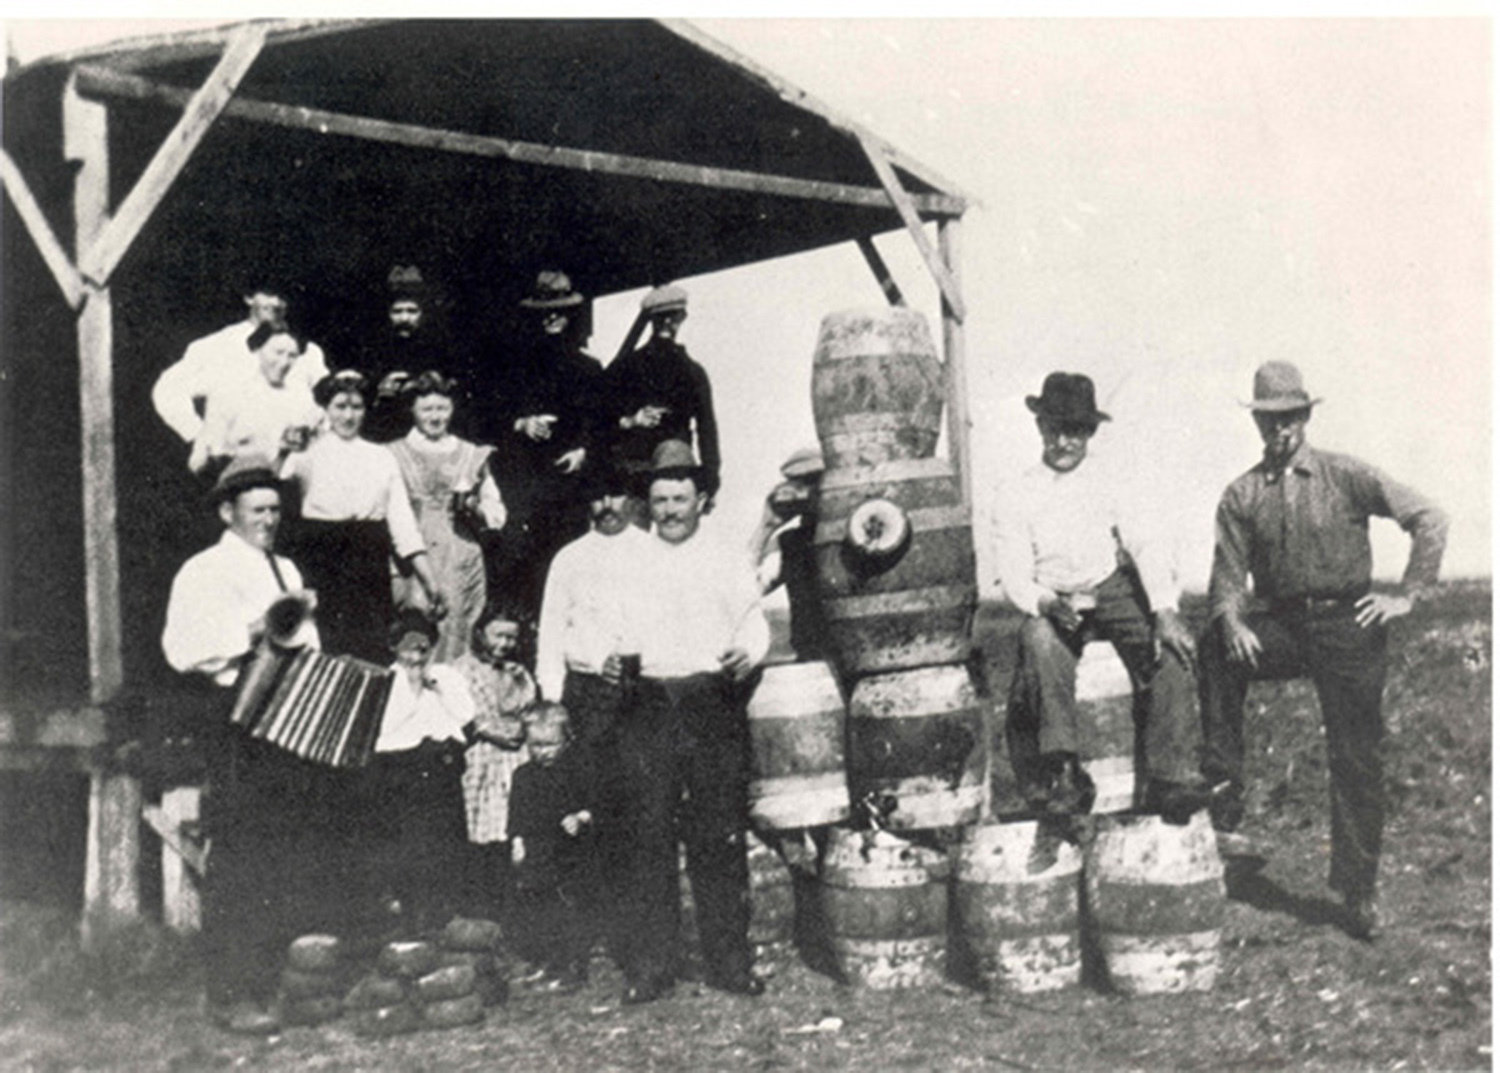 Vlaamse immigranten spelen volksspelen in Texas omstreeks 1900. (Flemish immigrants play popular games in Texas 1900), Familie Persyn, San Antonio, Texas 1900, Sportimonium vzw, In Copyright